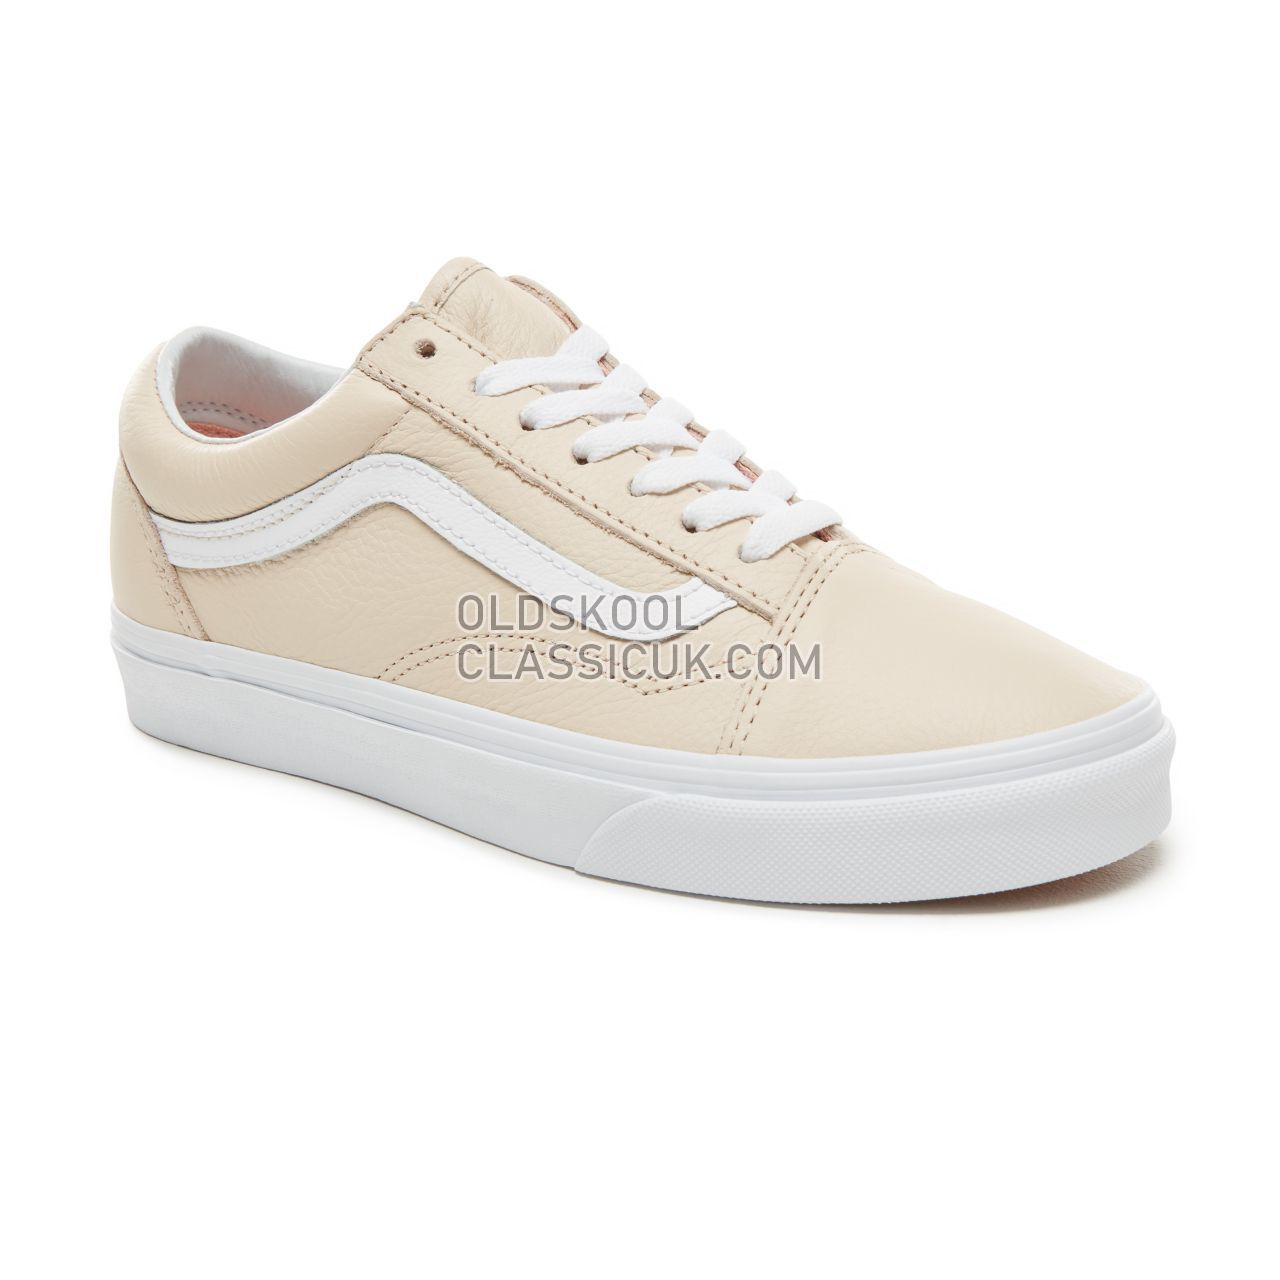 Vans Leather Old Skool Sneakers Womens (Leather) Sand Dollar VA38G1UA8 Shoes